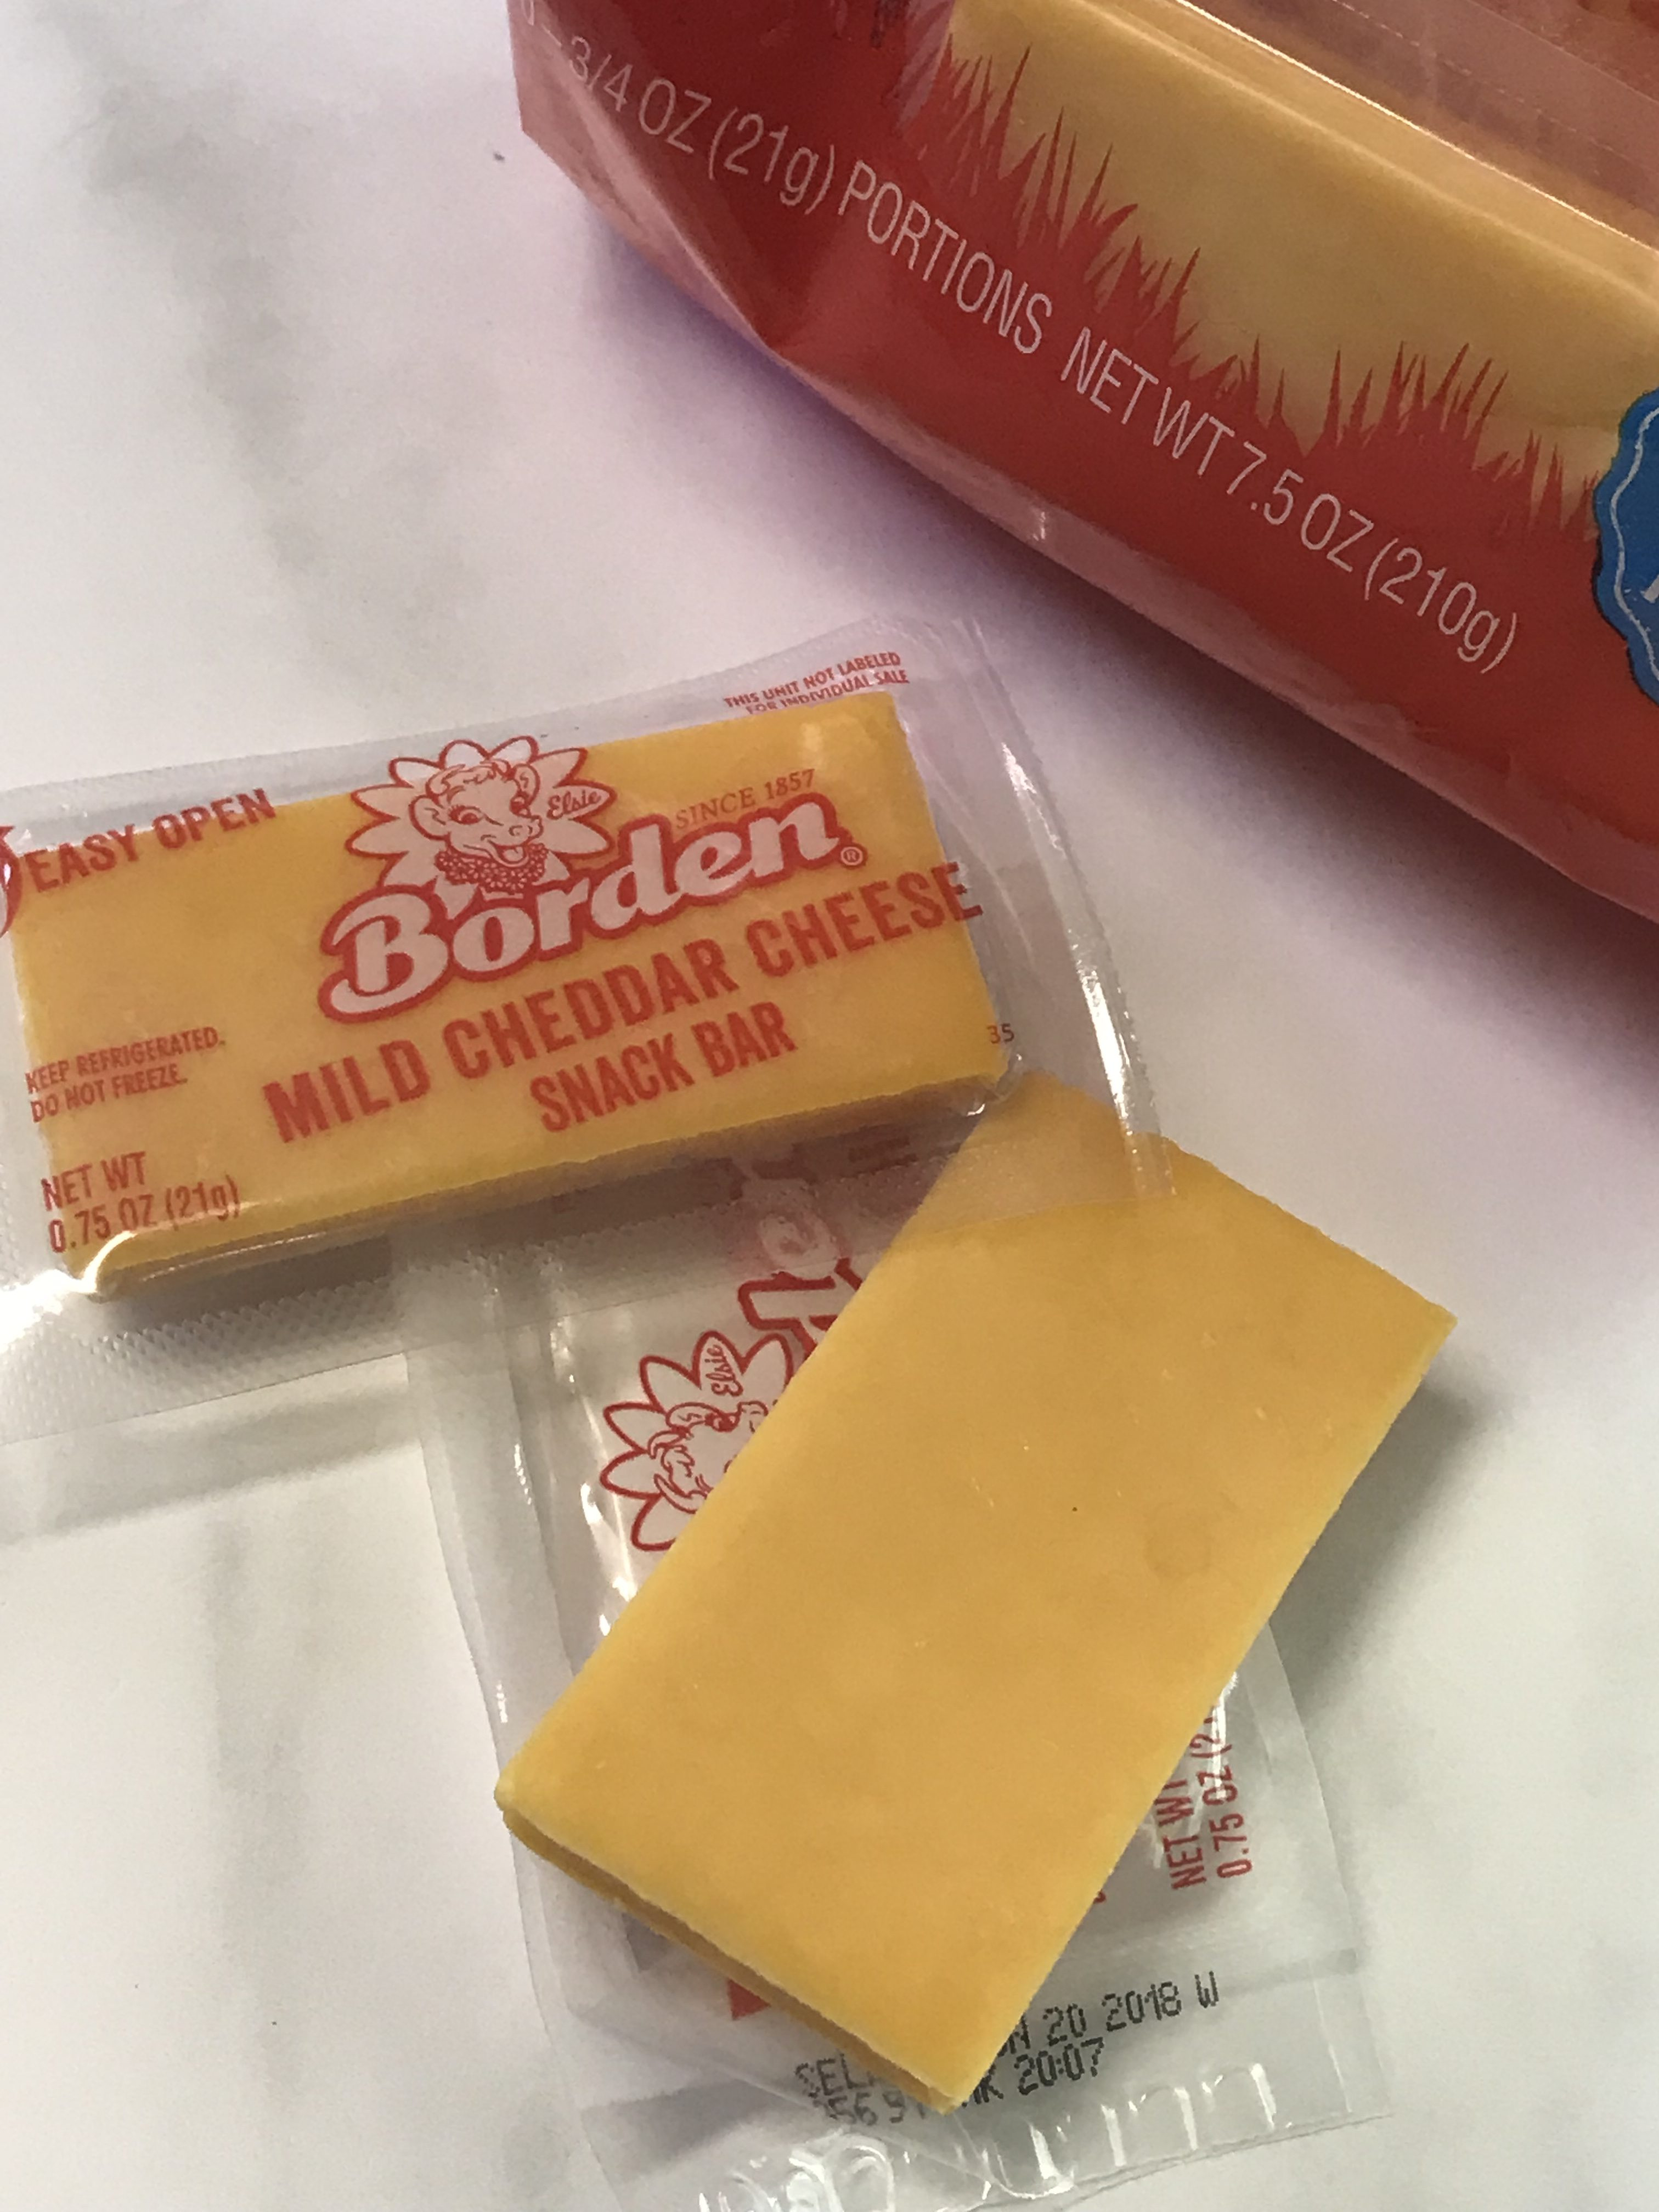 Need a great tasting snack? These Borden® Cheese Snack Bars are Great for Snacks on the Go #AD  #JuneDairyMonth #JuneDairyMonthBlog